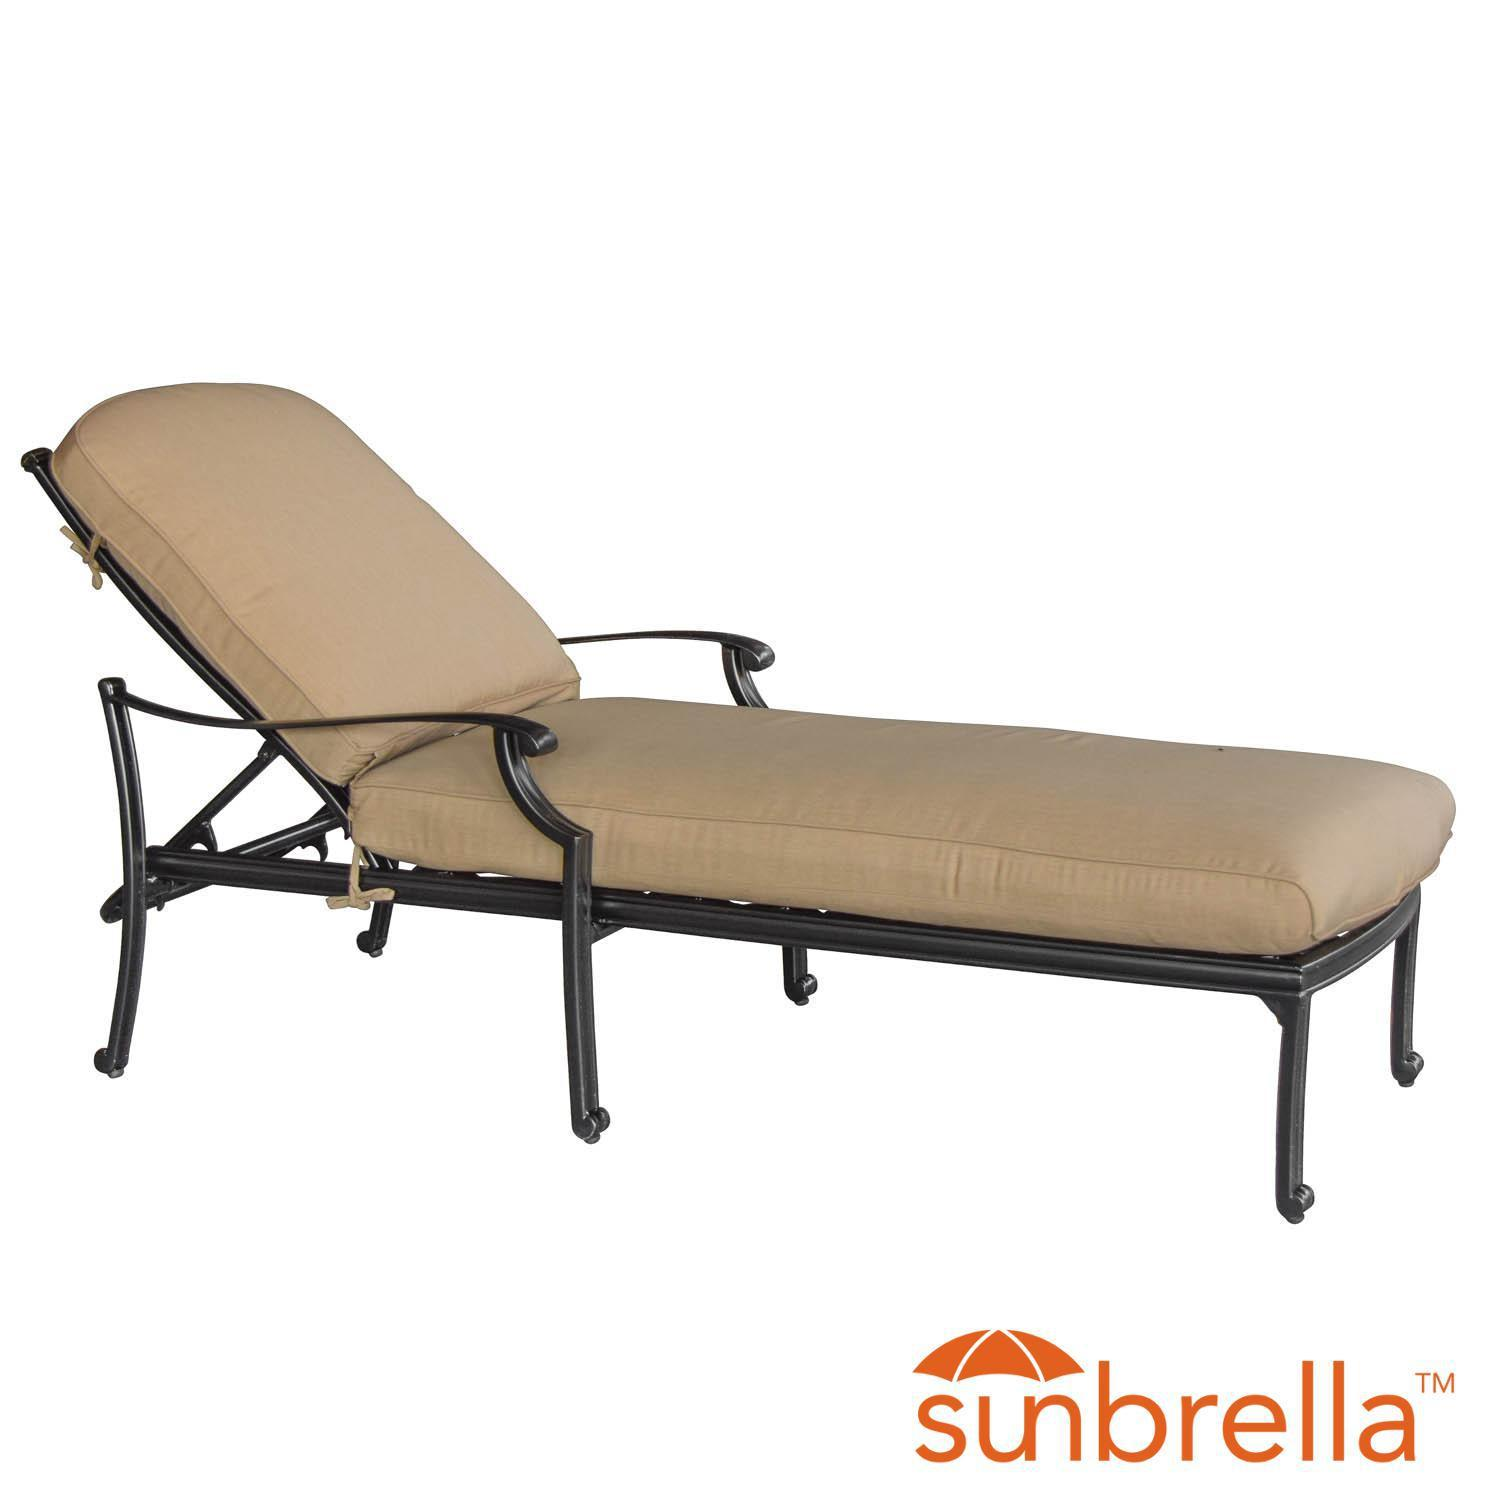 Bocage Cast Aluminum Patio Chaise Lounge W/ Sunbrella Heather Beige Cushion By Lakeview Outdoor Designs